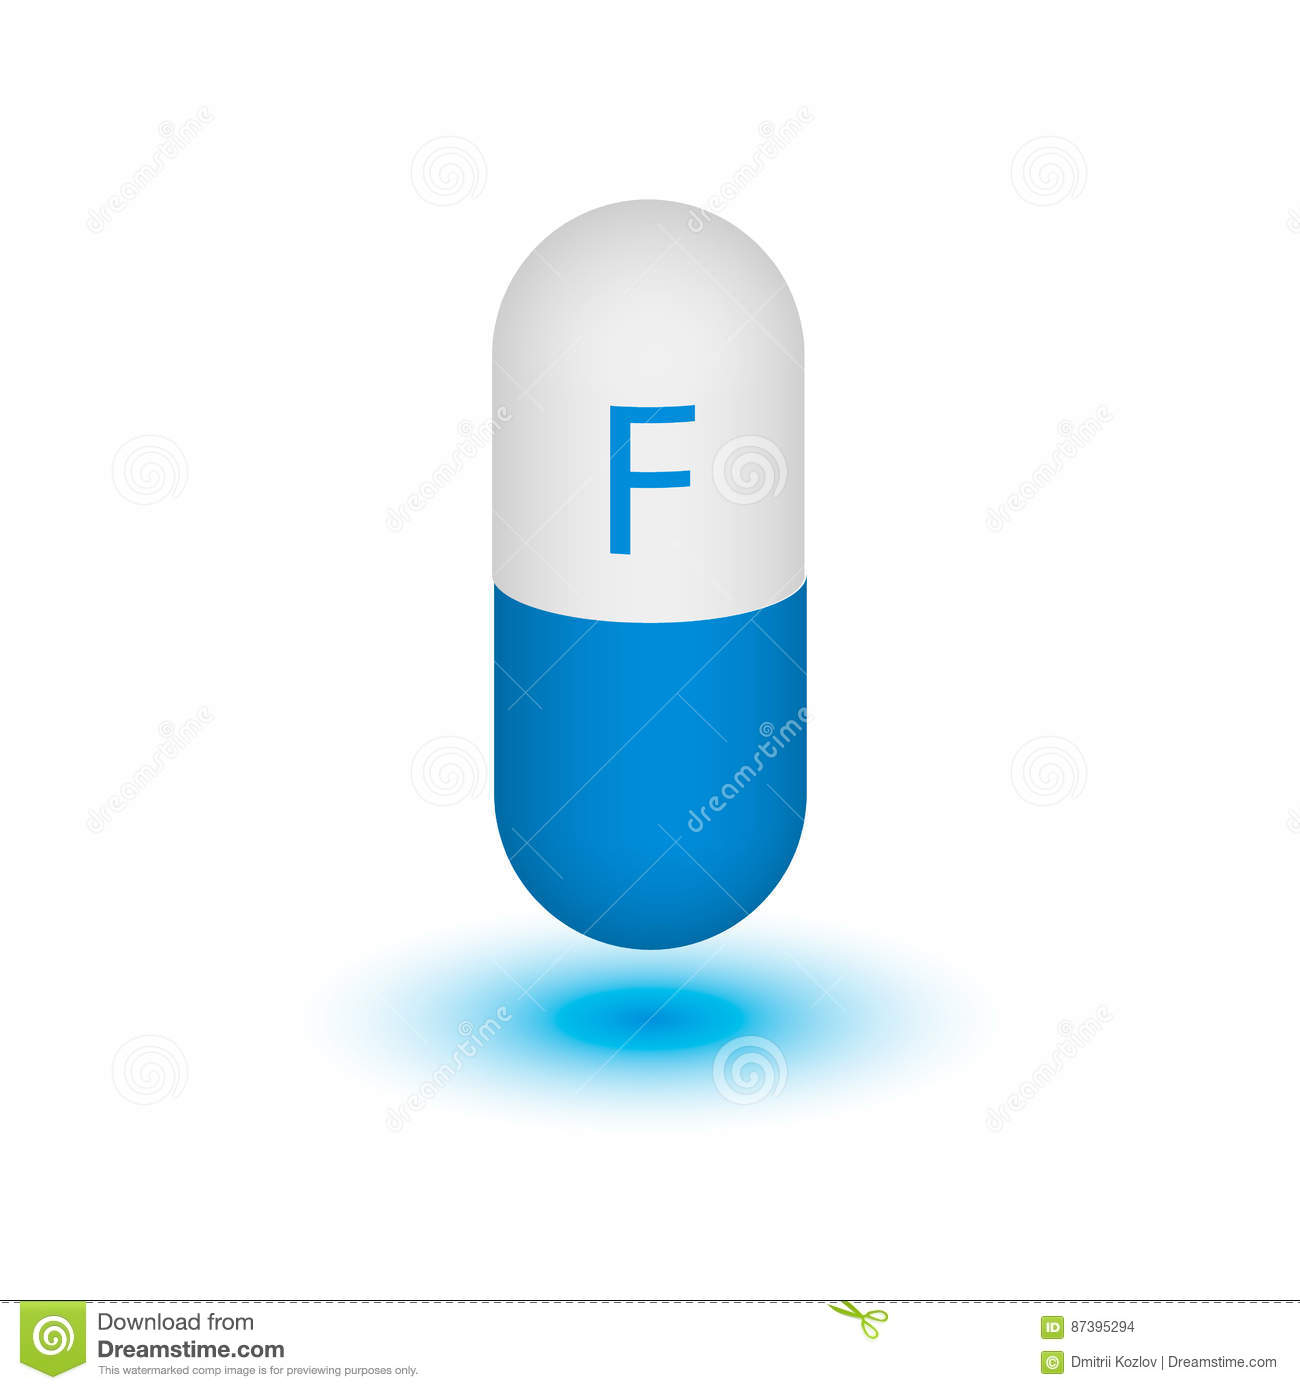 Fluorine Symbol On The Capsule Stock Vector Illustration Of Mass